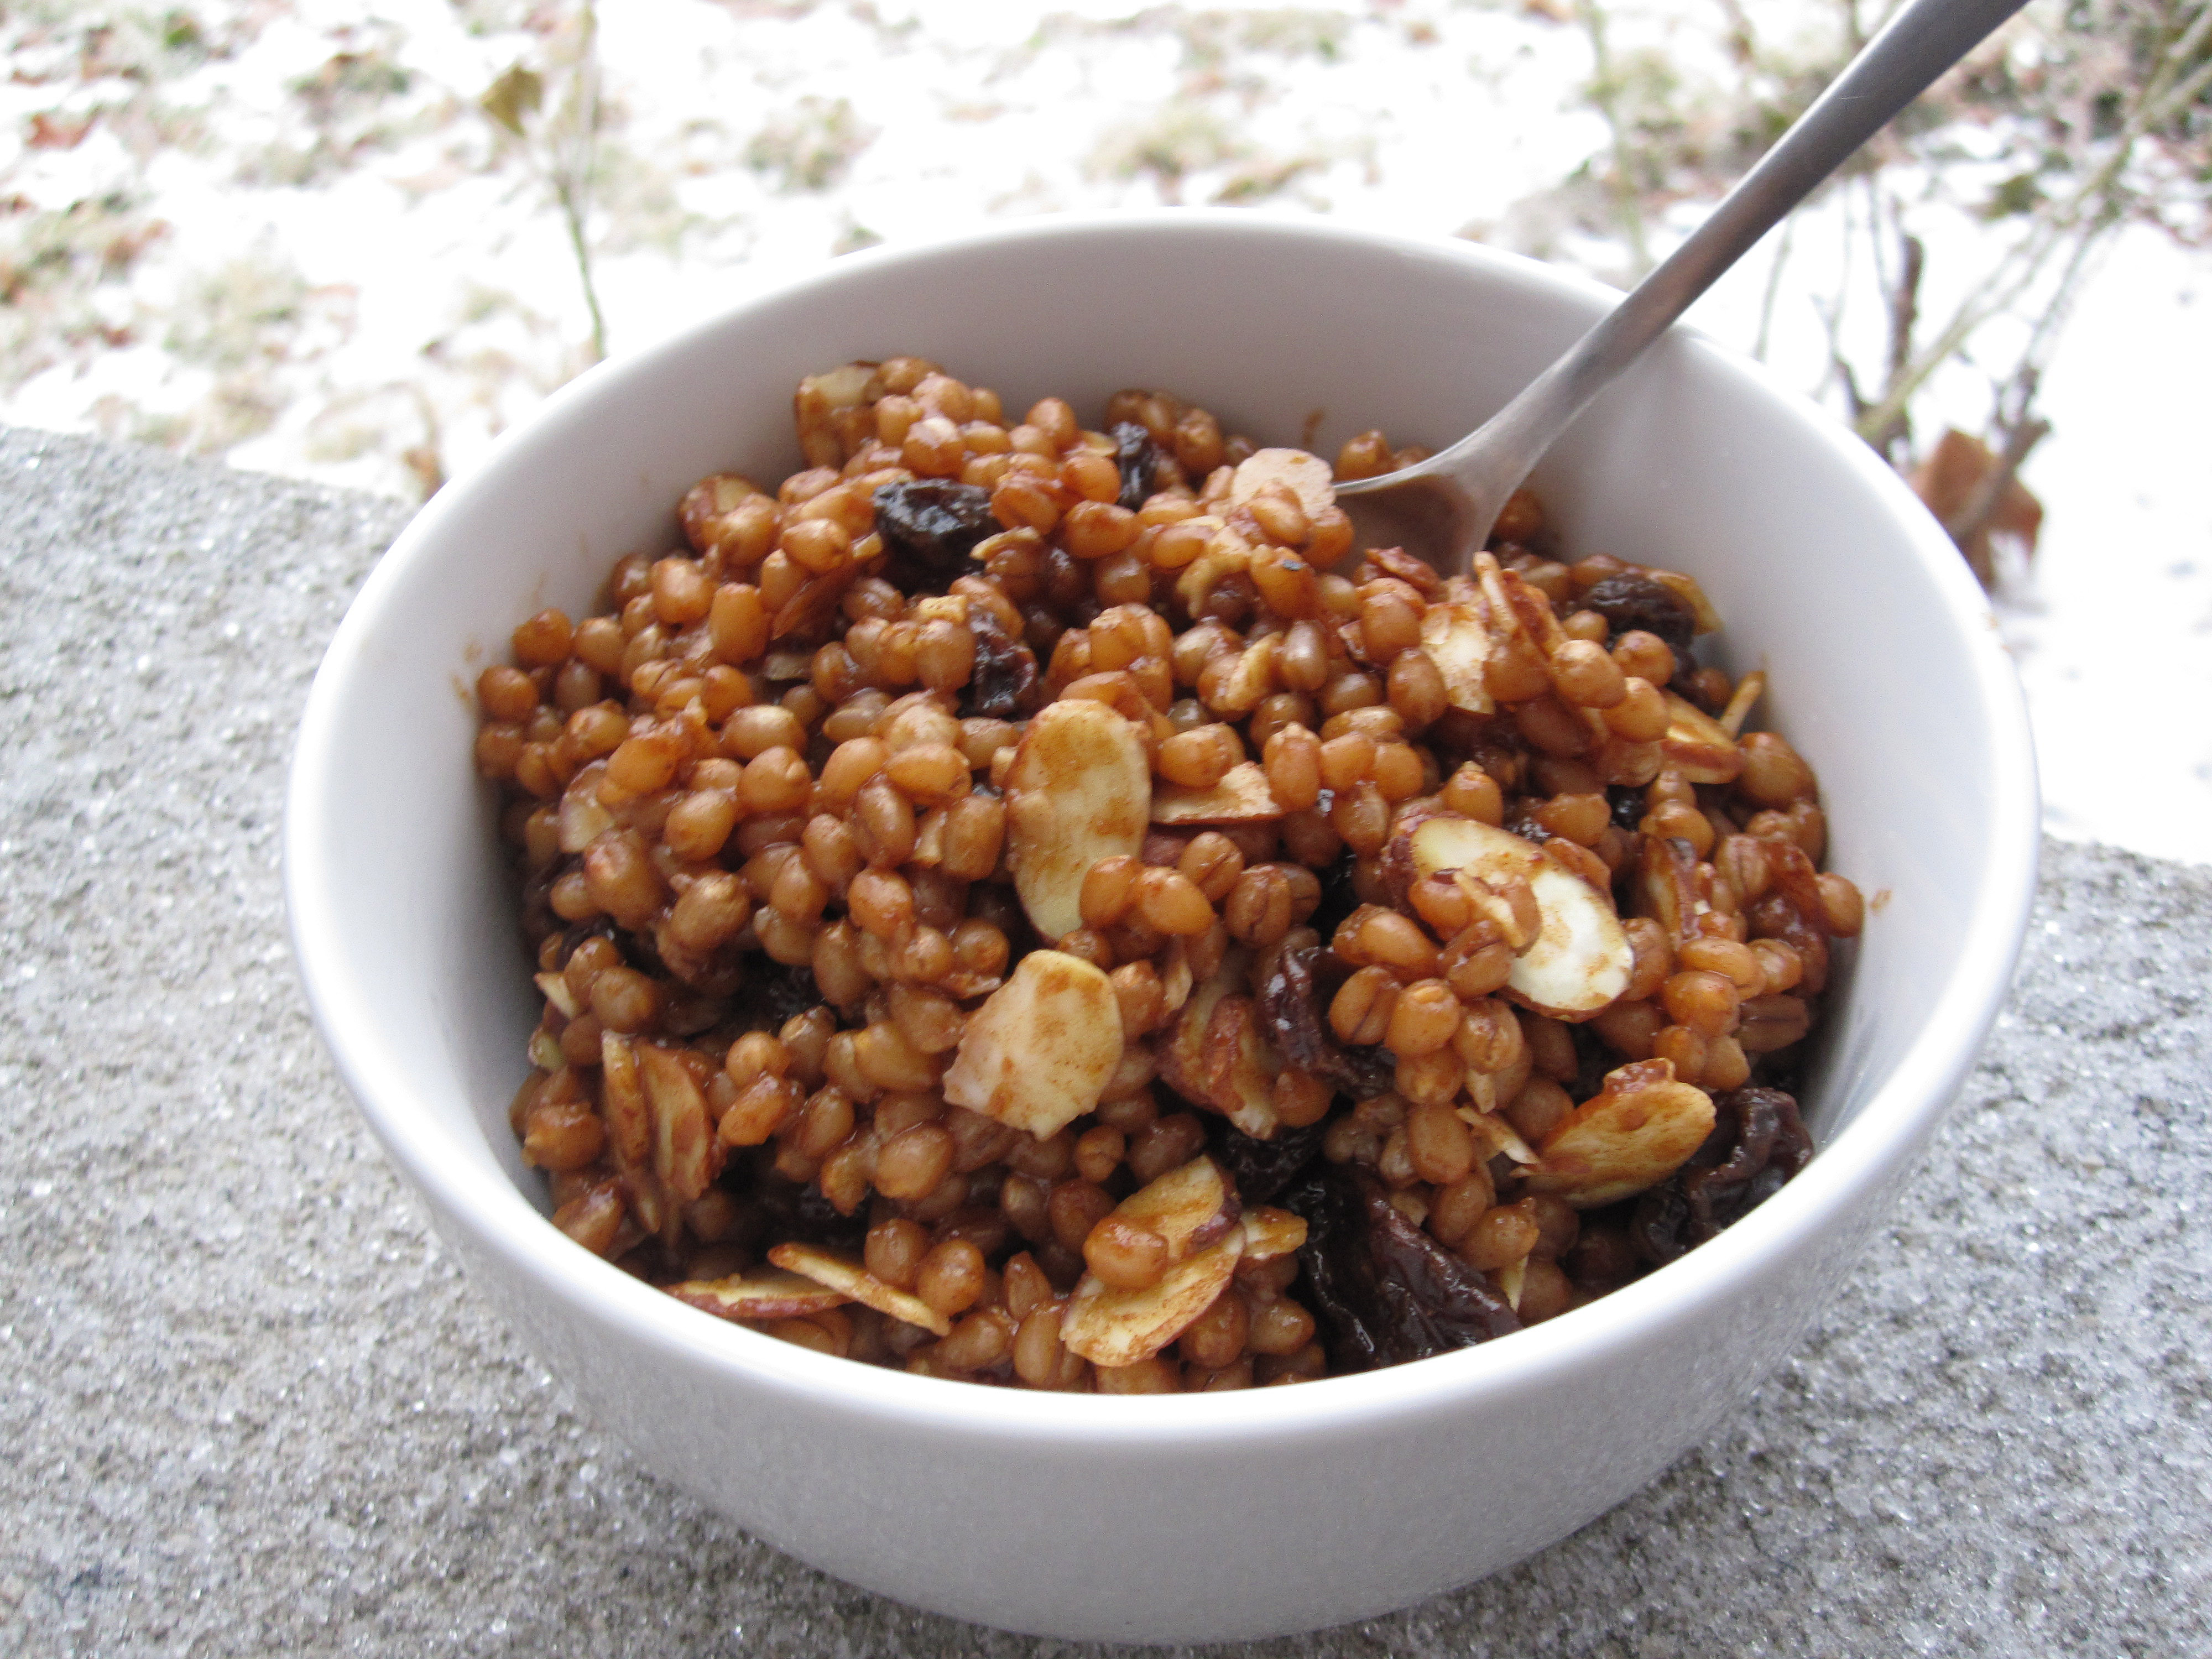 Vegan Wheatberries Breakfast Style